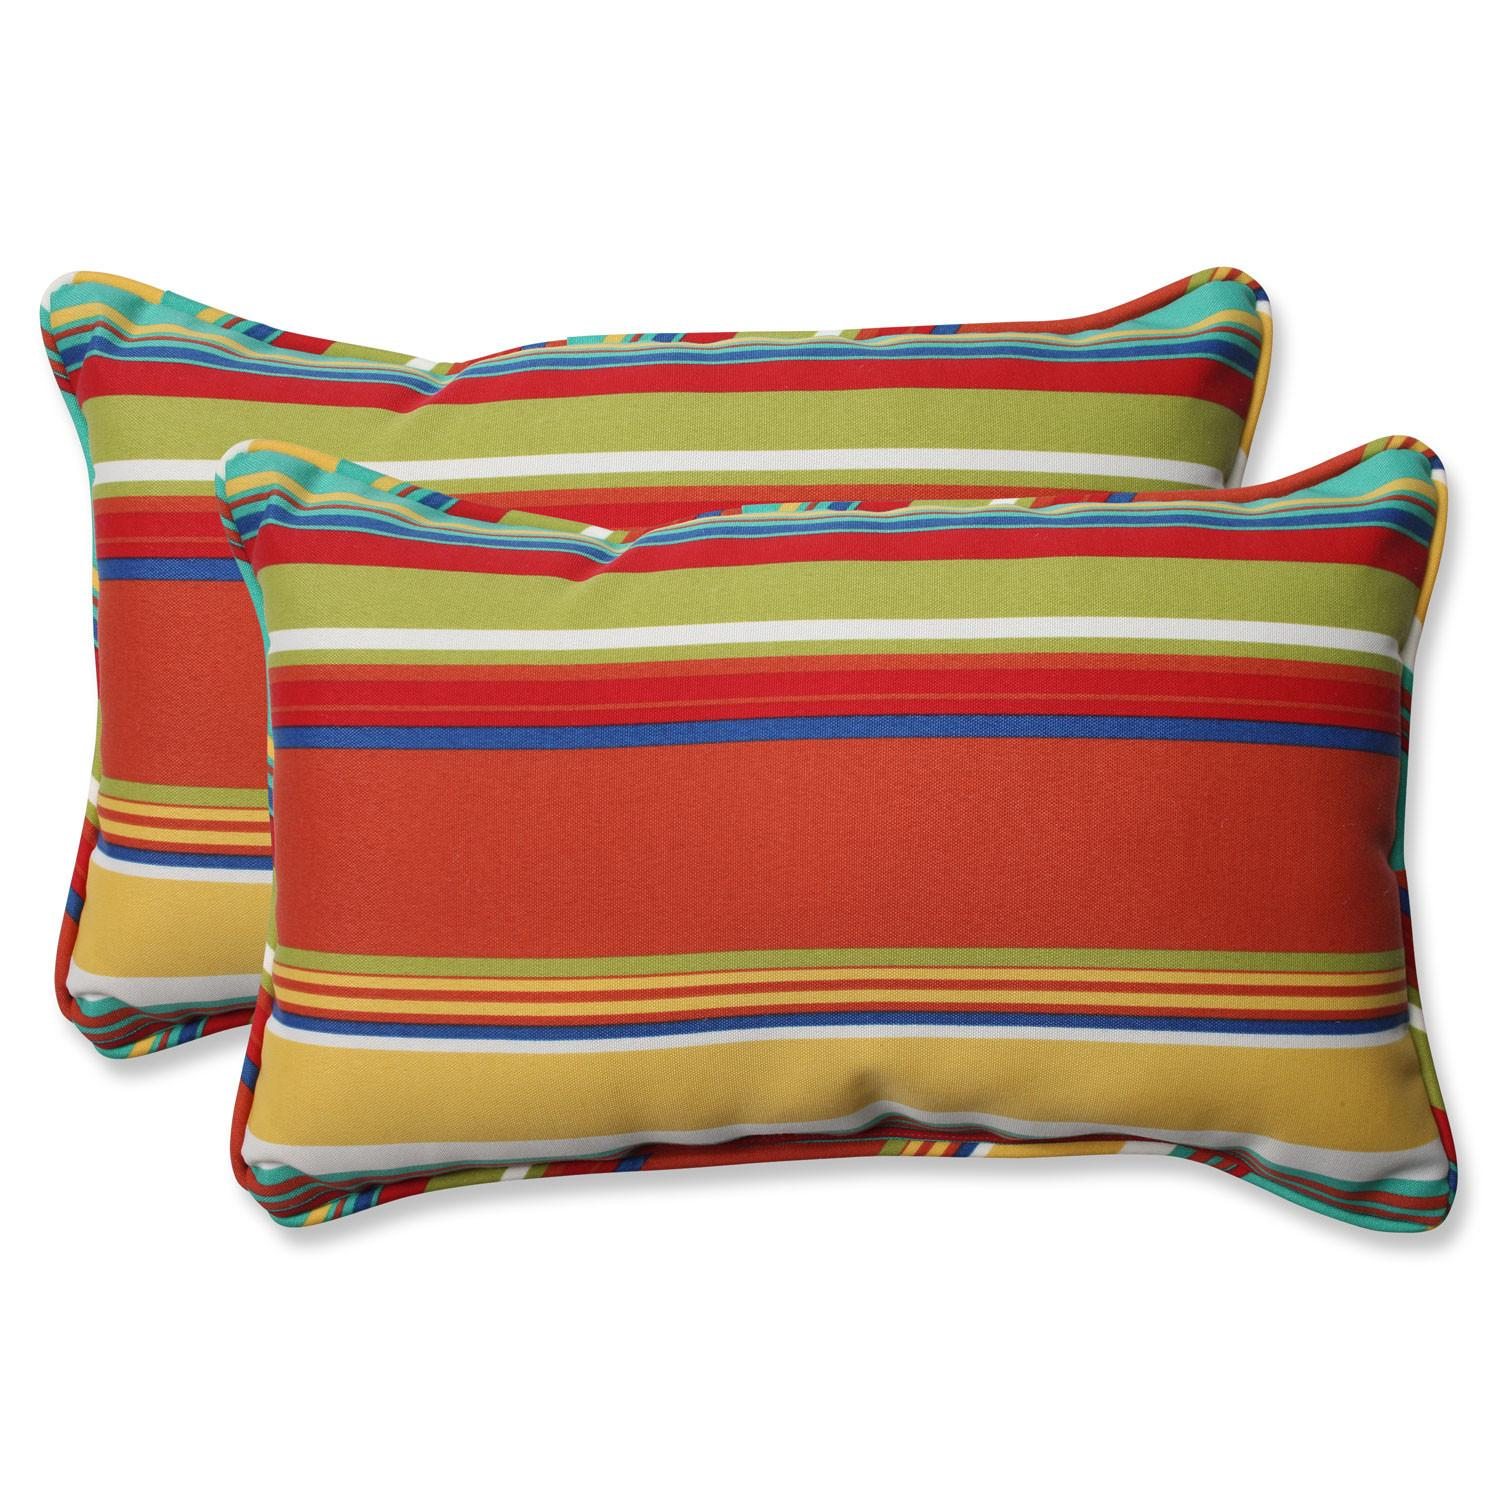 Westport Spring Rectangular Outdoor Throw Pillow Set